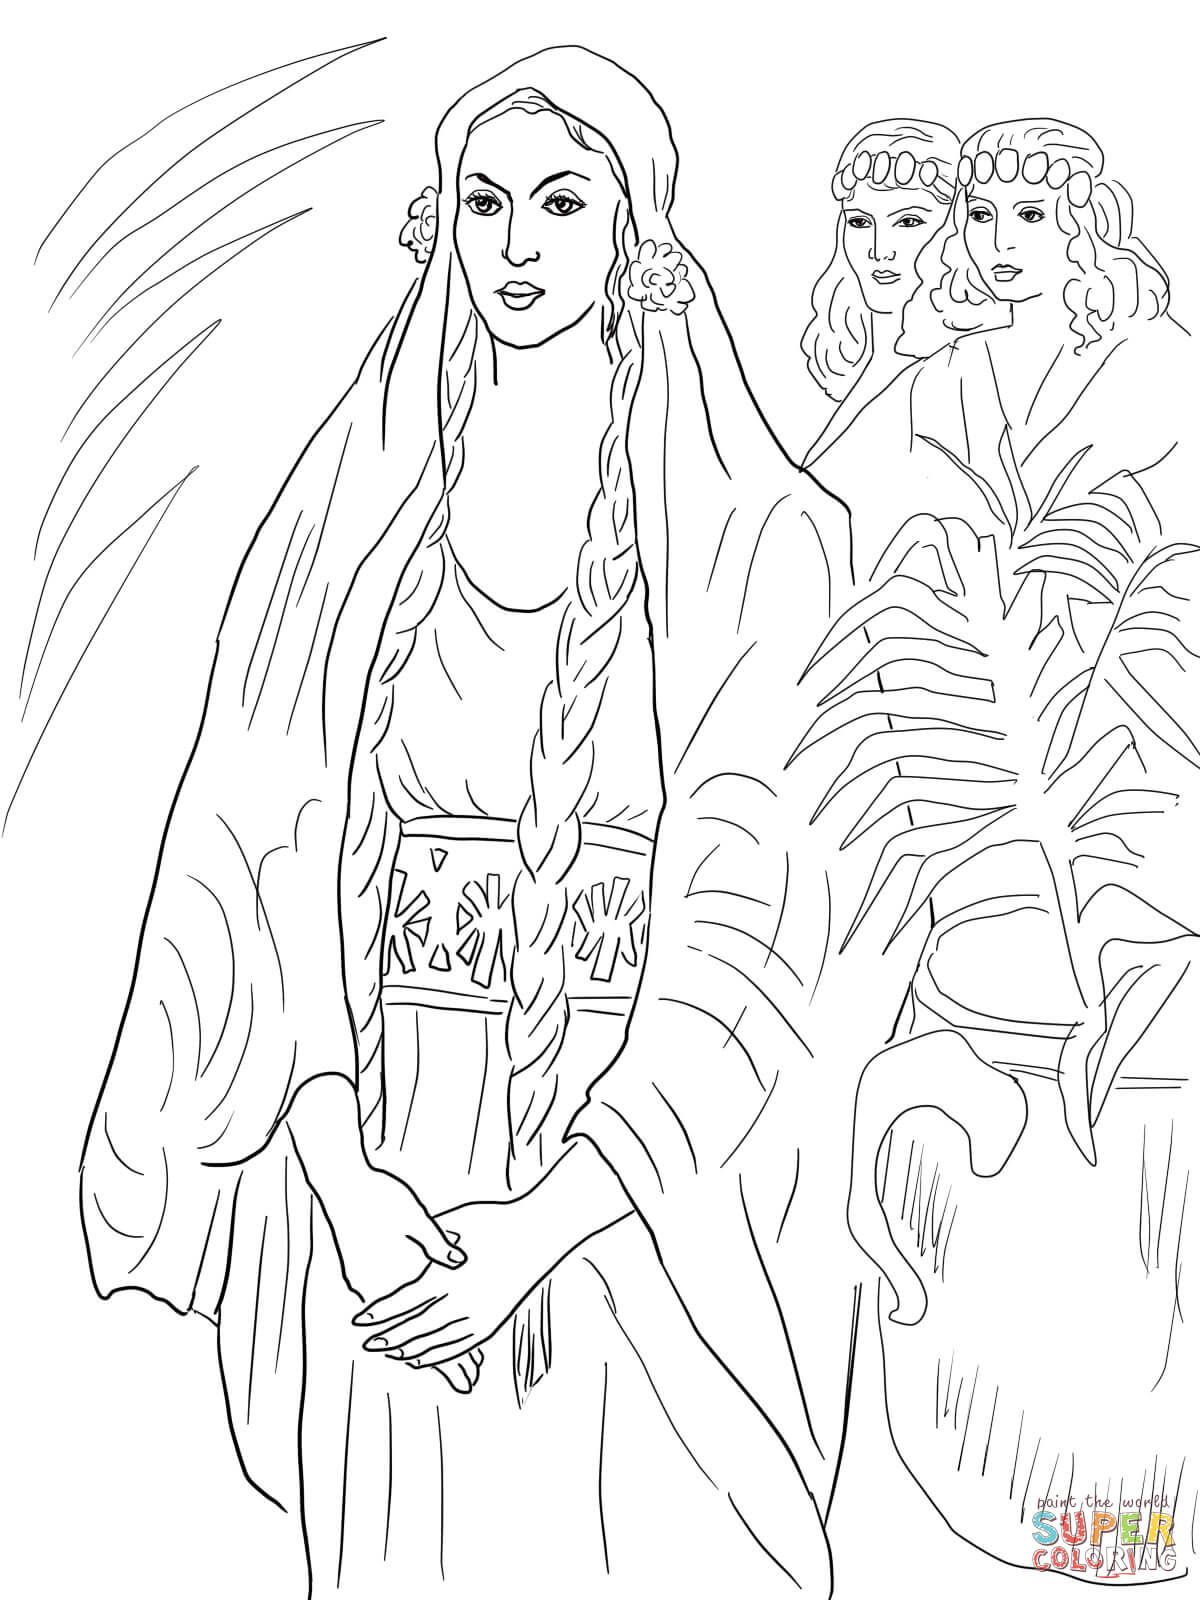 esther the queen coloring page from queen esther category select from 27278 printable crafts of cartoons nature animals bible and many more - Coloring Pages Esther Queen Bible